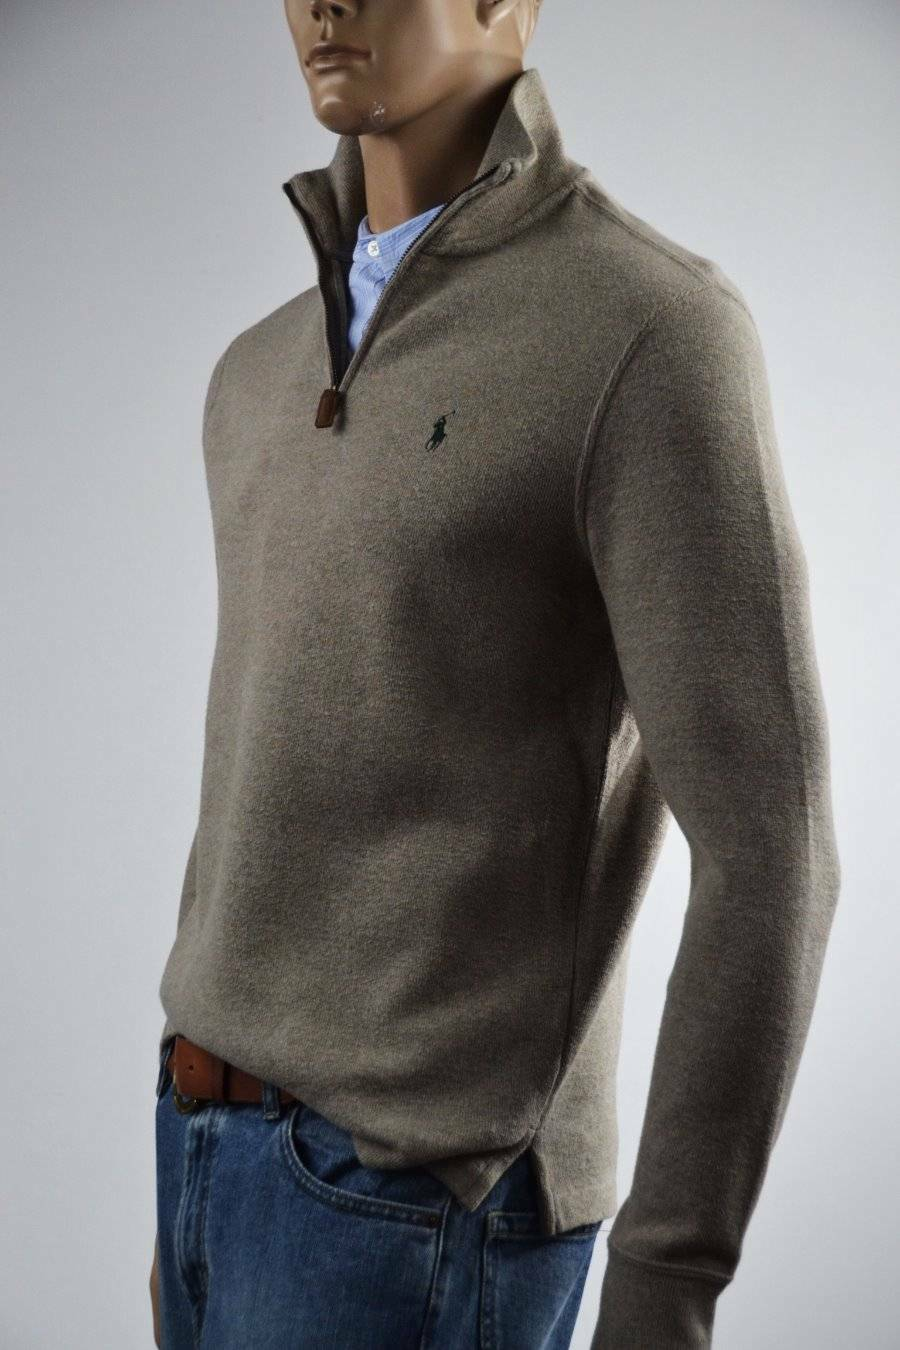 Ralph Lauren French-Ribbed Heather Brown Half-Zip Sweater bluee Pony- Small-NWT